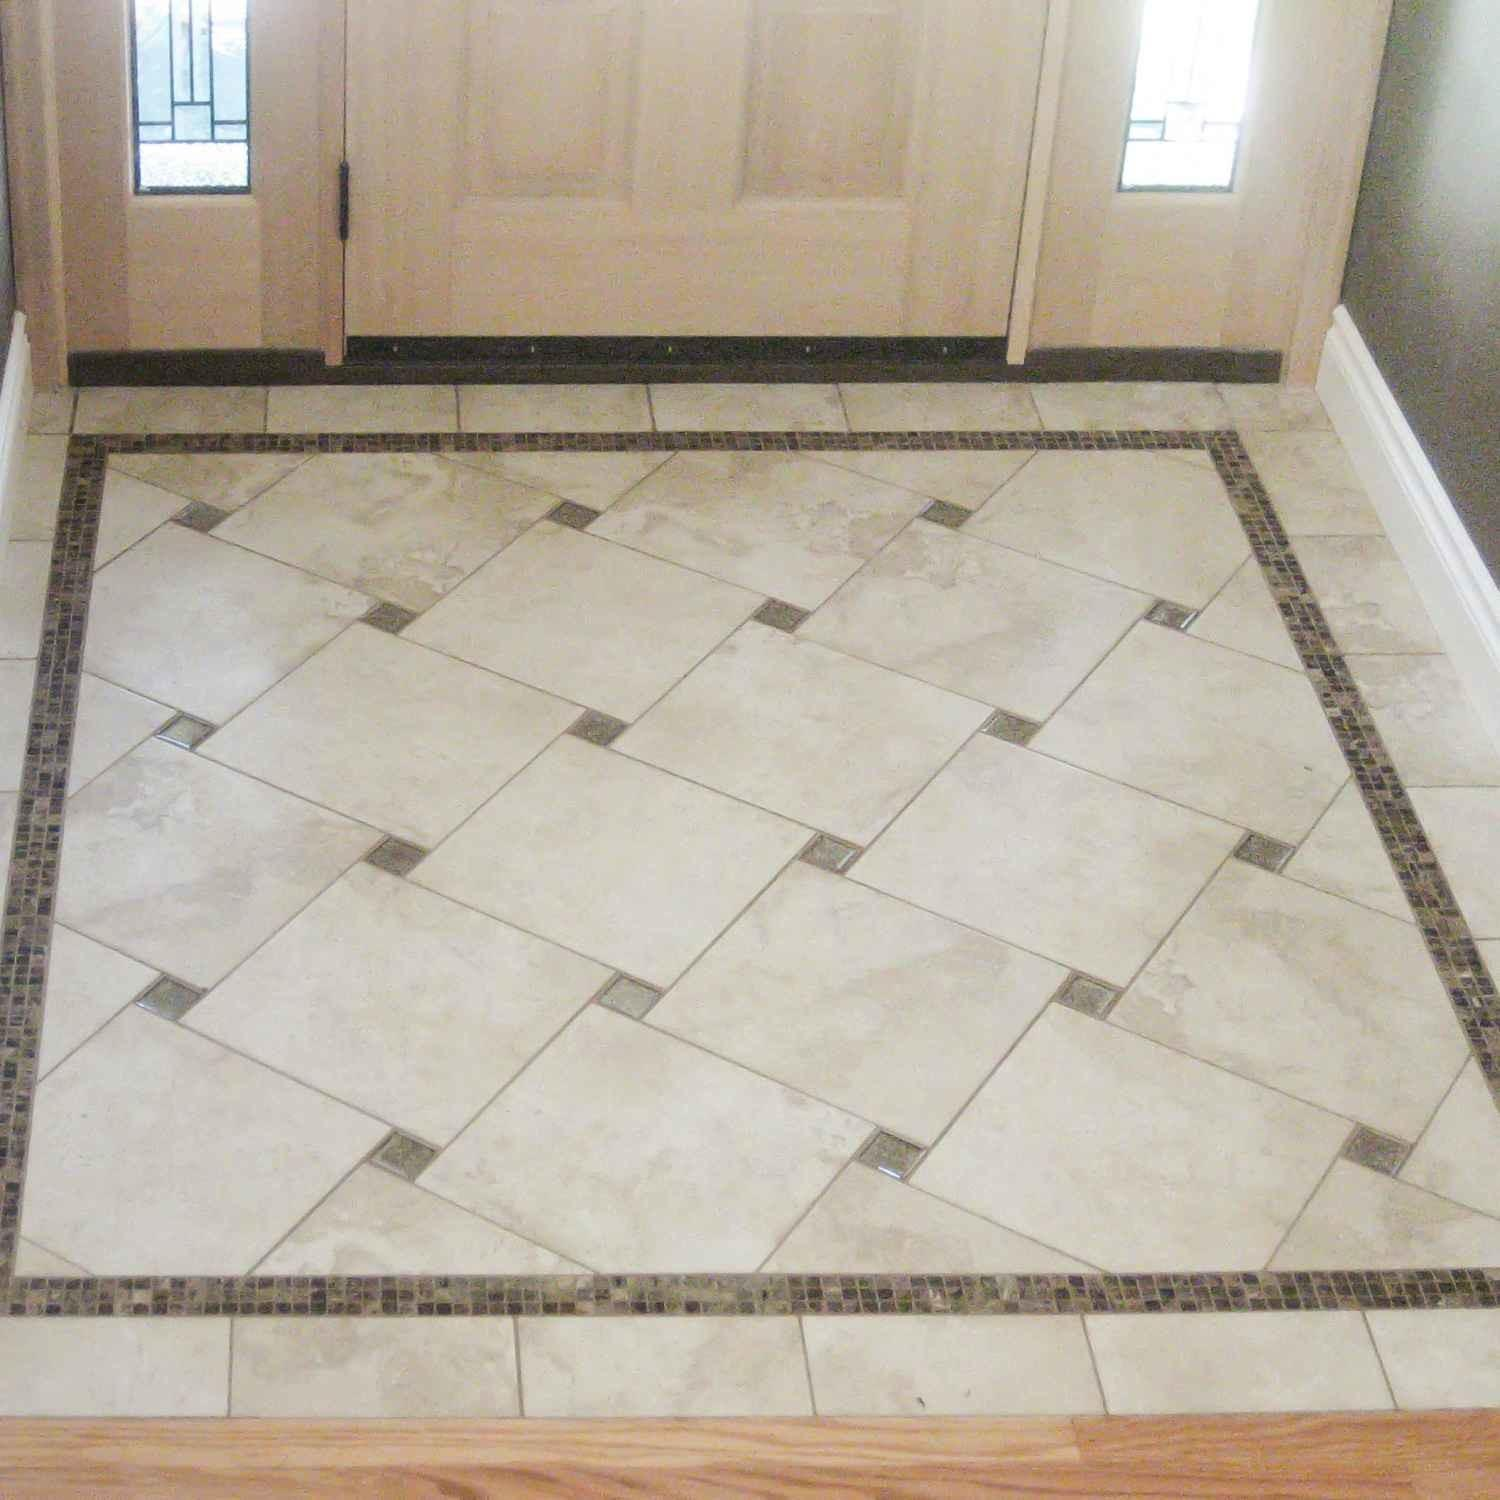 Tile Floor Design Patterns Floordecorate